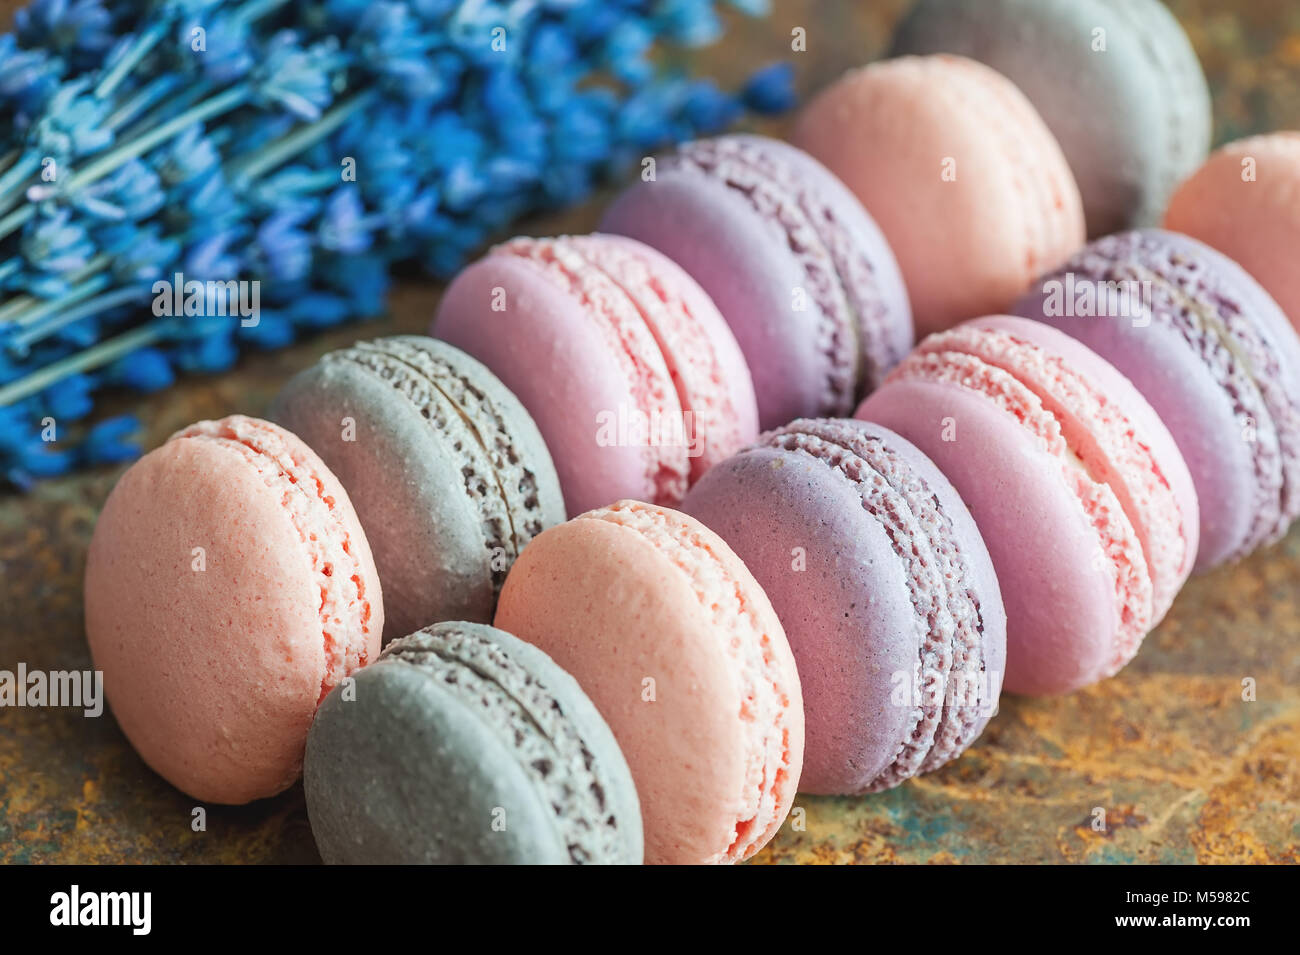 Freshly baked multi-colored berry macaroons close-up with lavender flowers, selective focus. - Stock Image